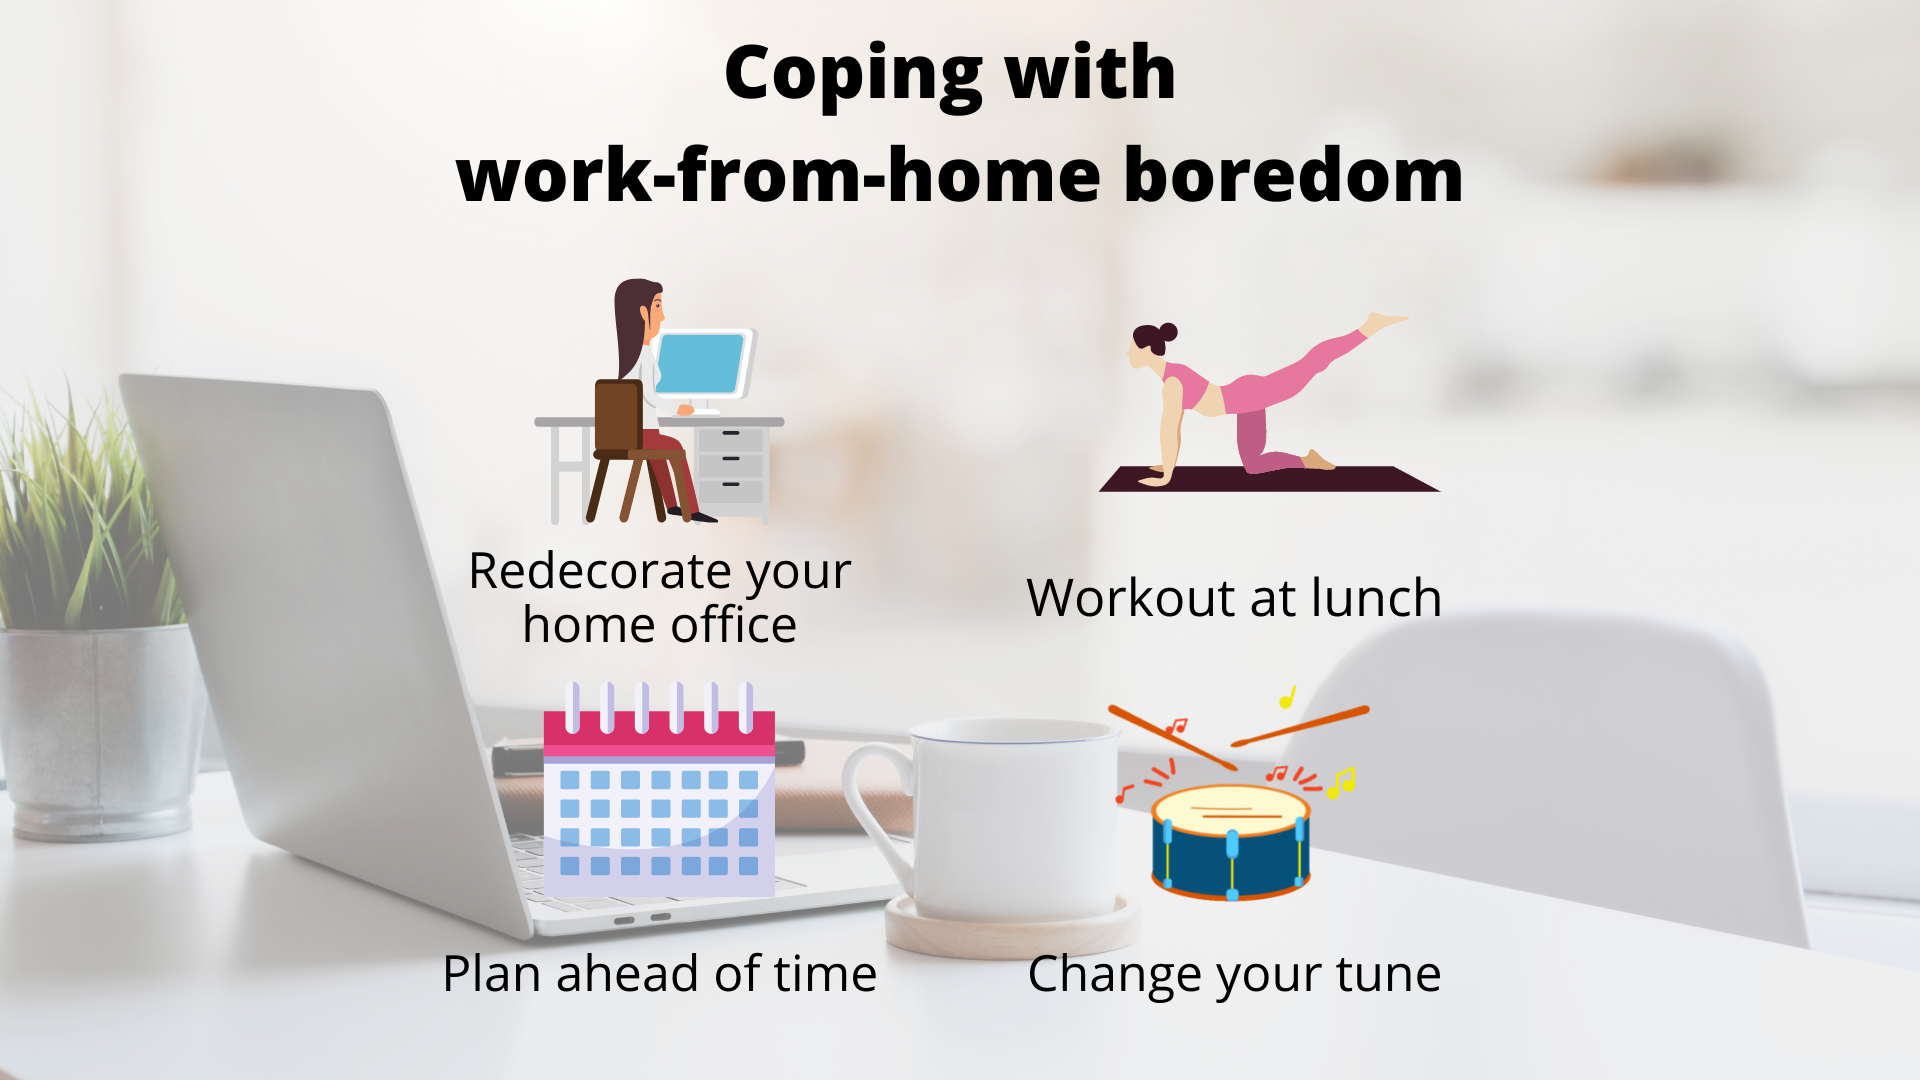 Coping with work-from-home (WFH) boredom